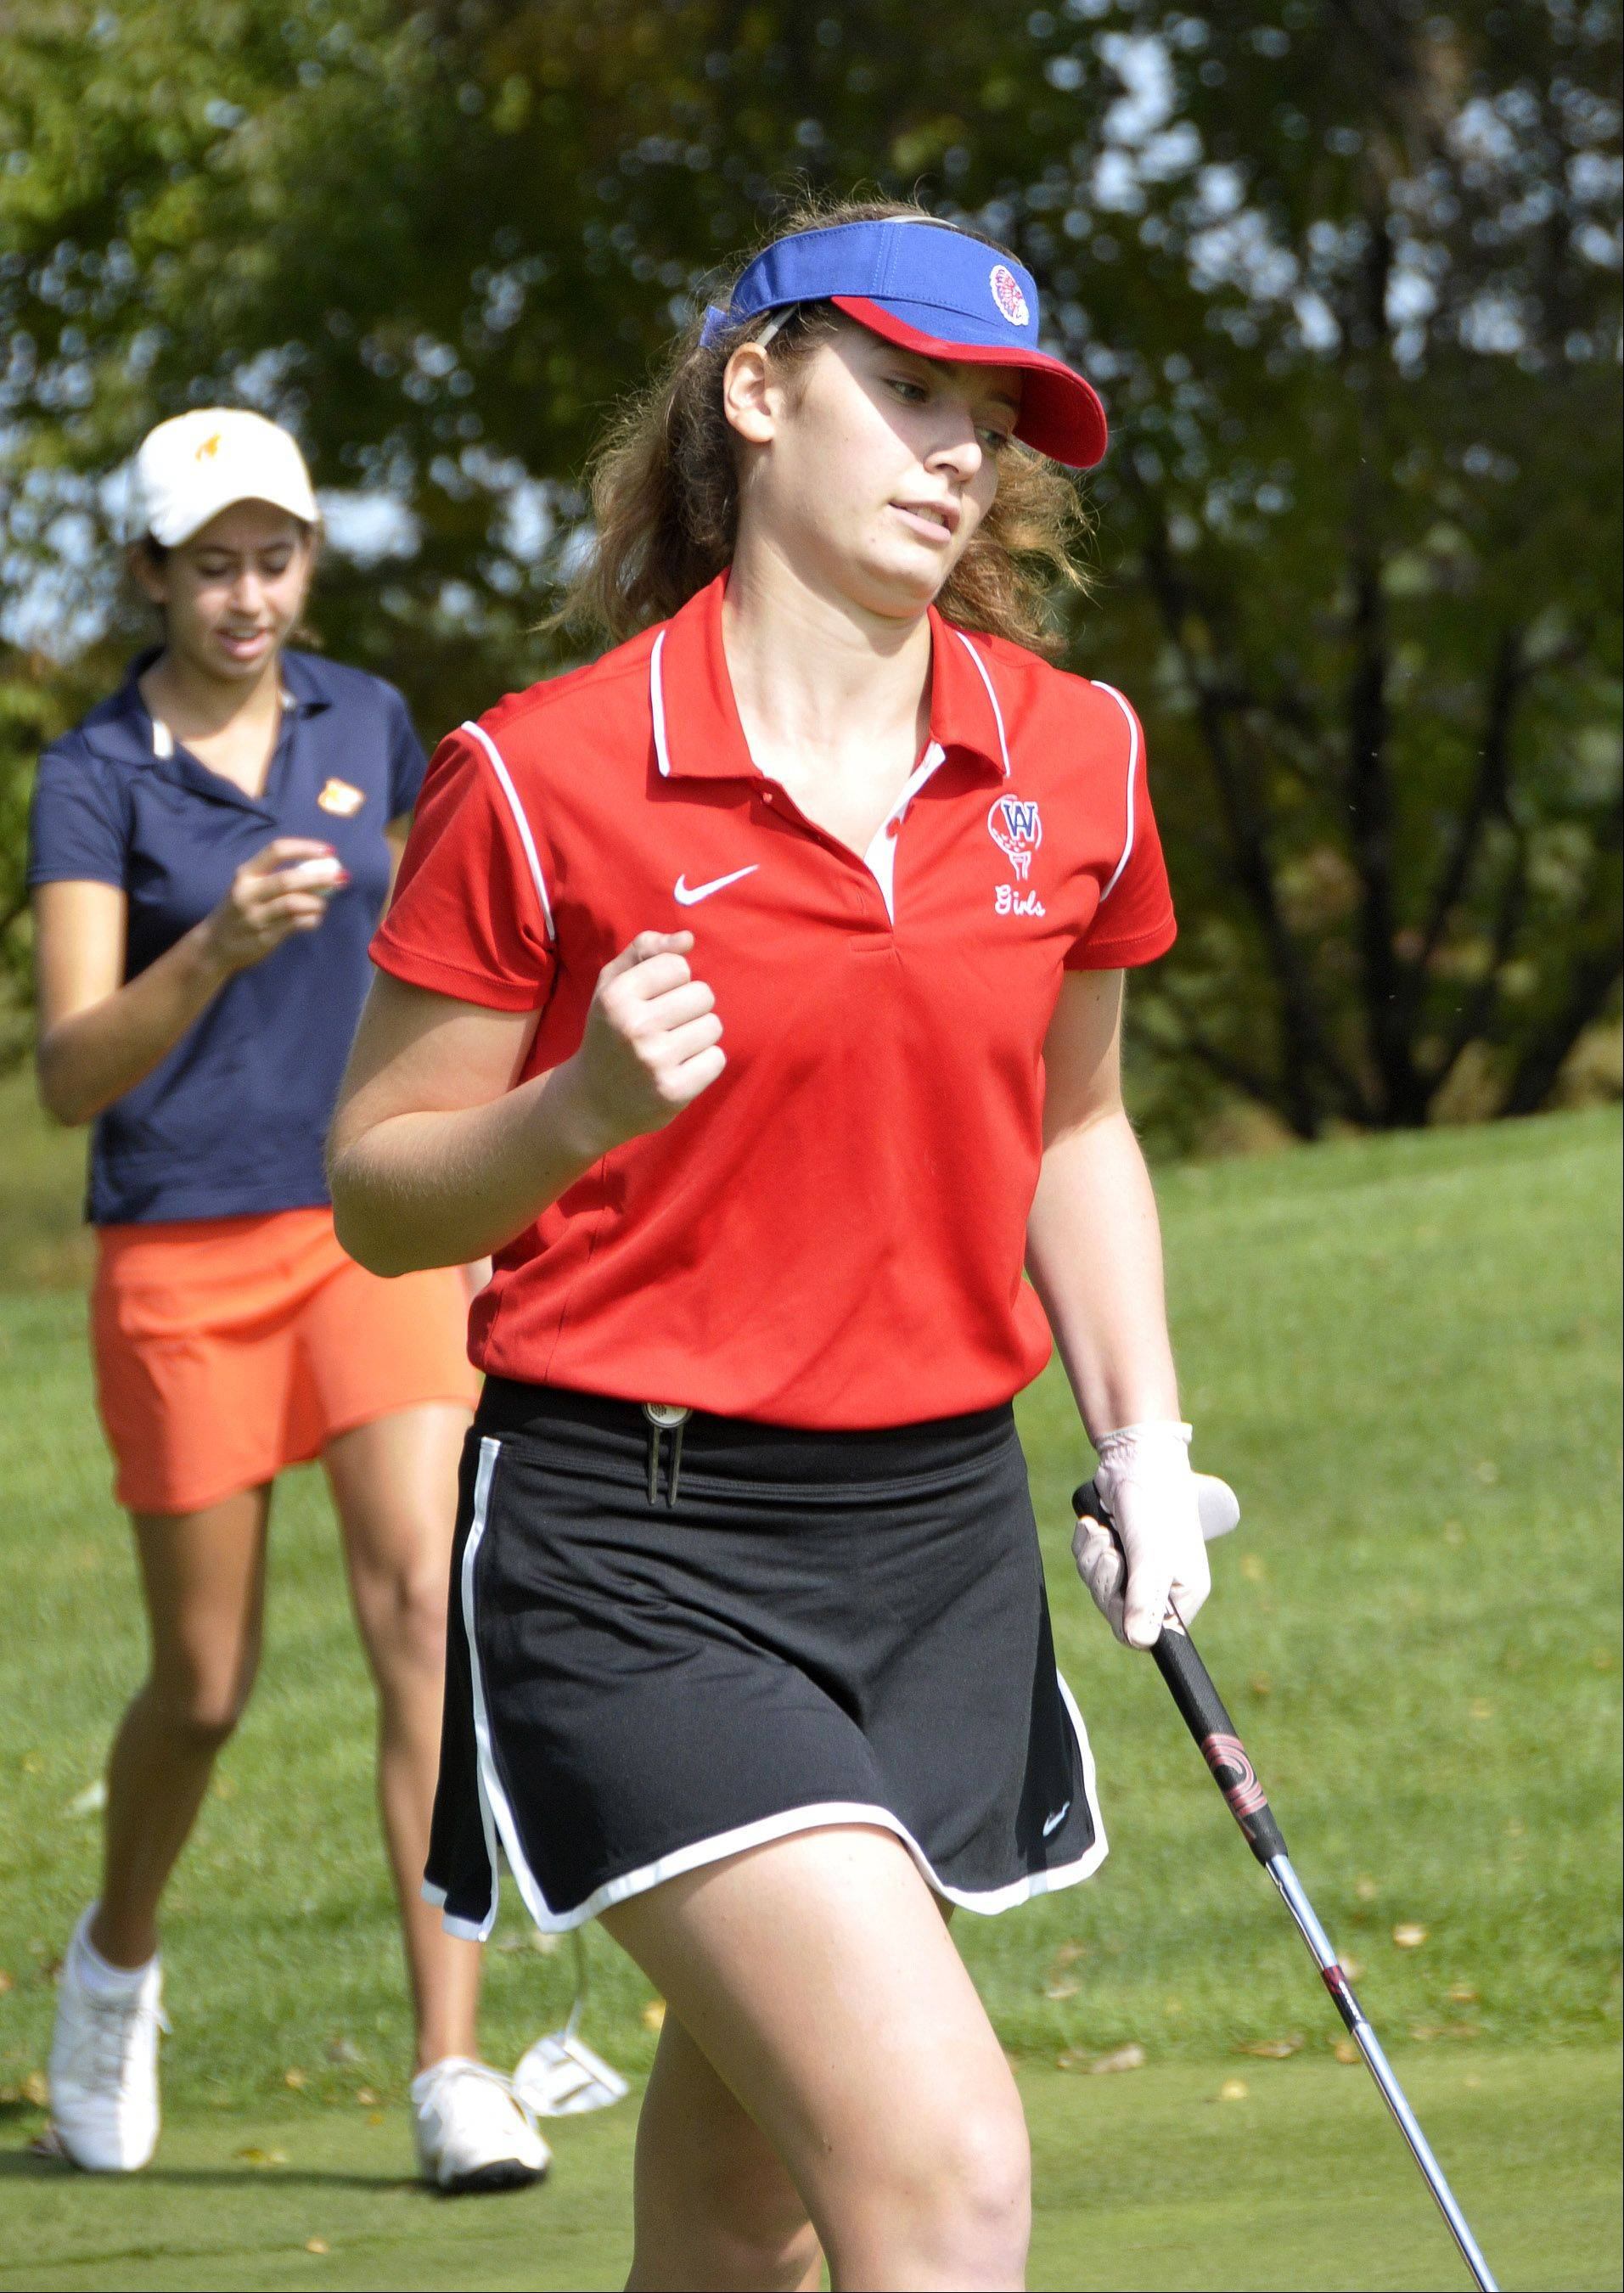 West Aurora's Kara Smith pumps her fist after making par on No. 10 at the DuPage Valley Conference meet at Phillips Park in Aurora.